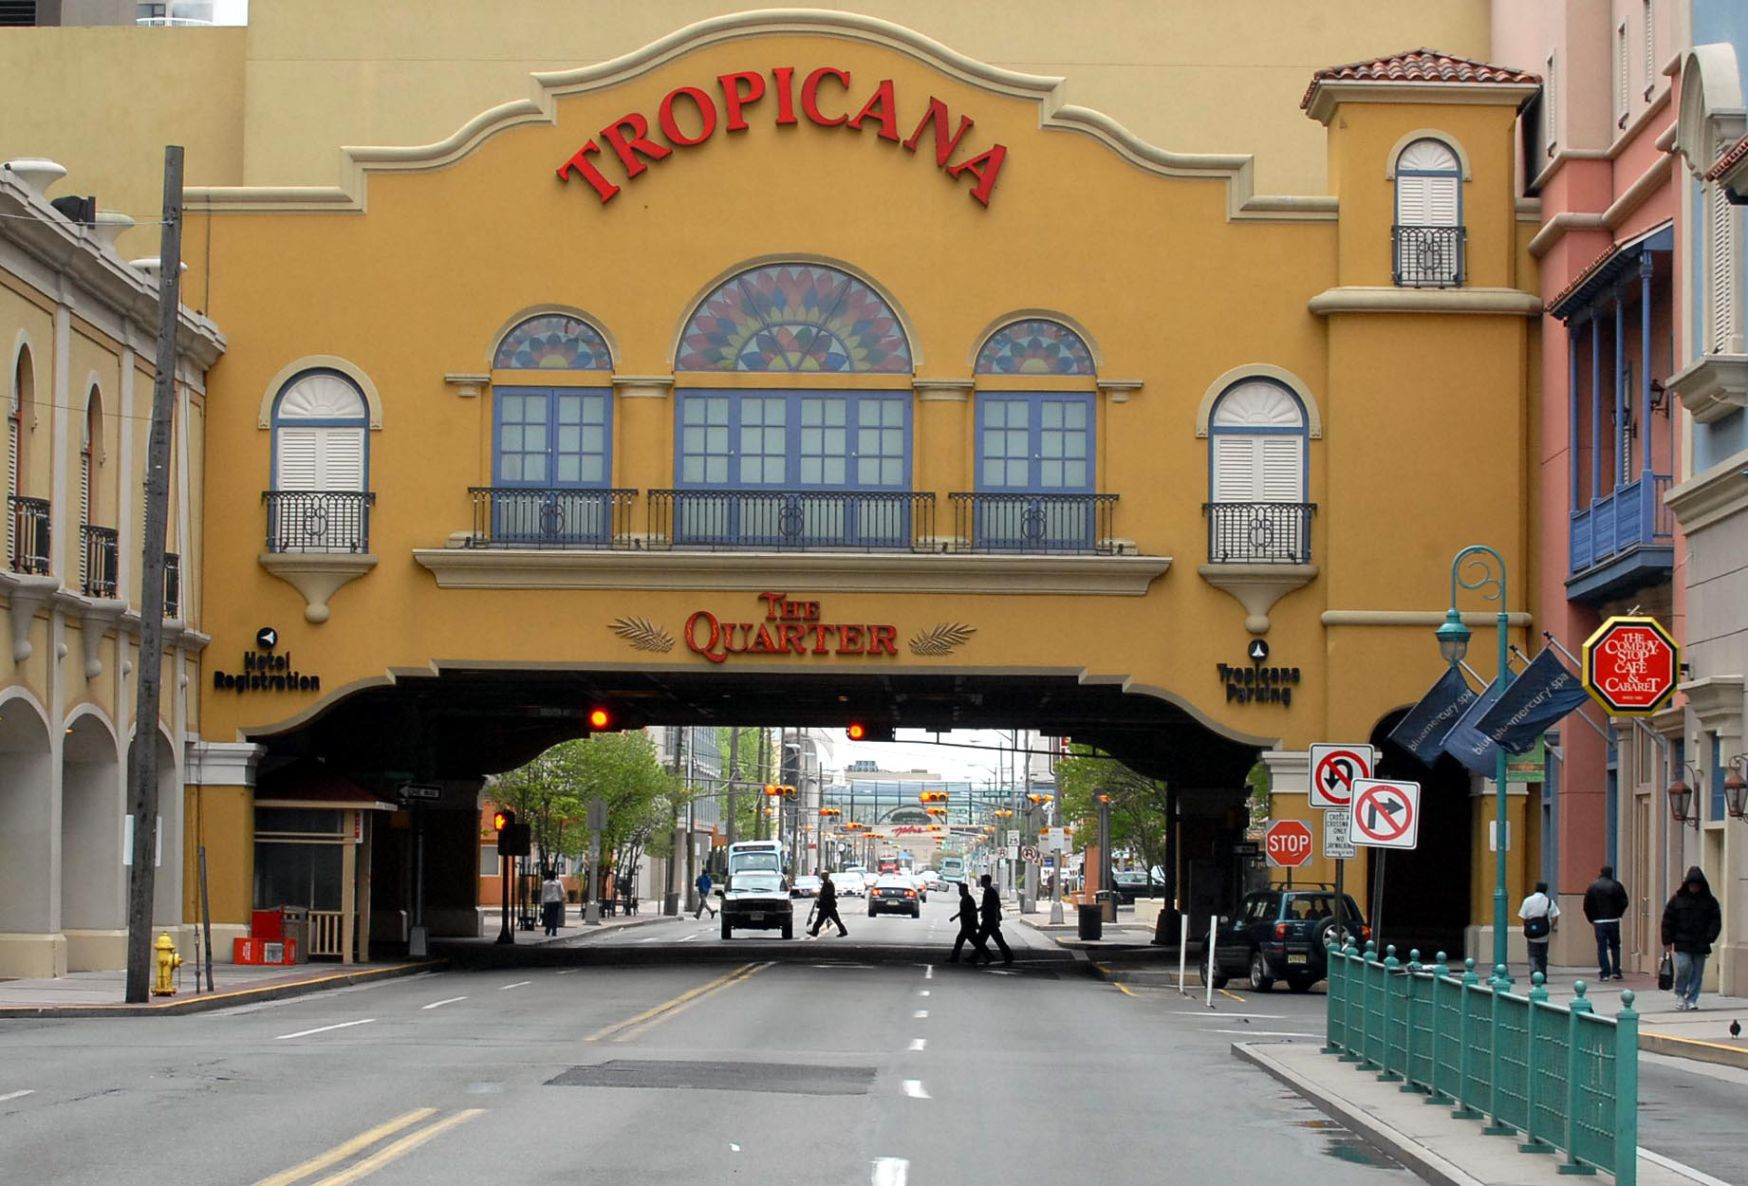 Death investigation underway at Tropicana in Atlantic City, New Jersey